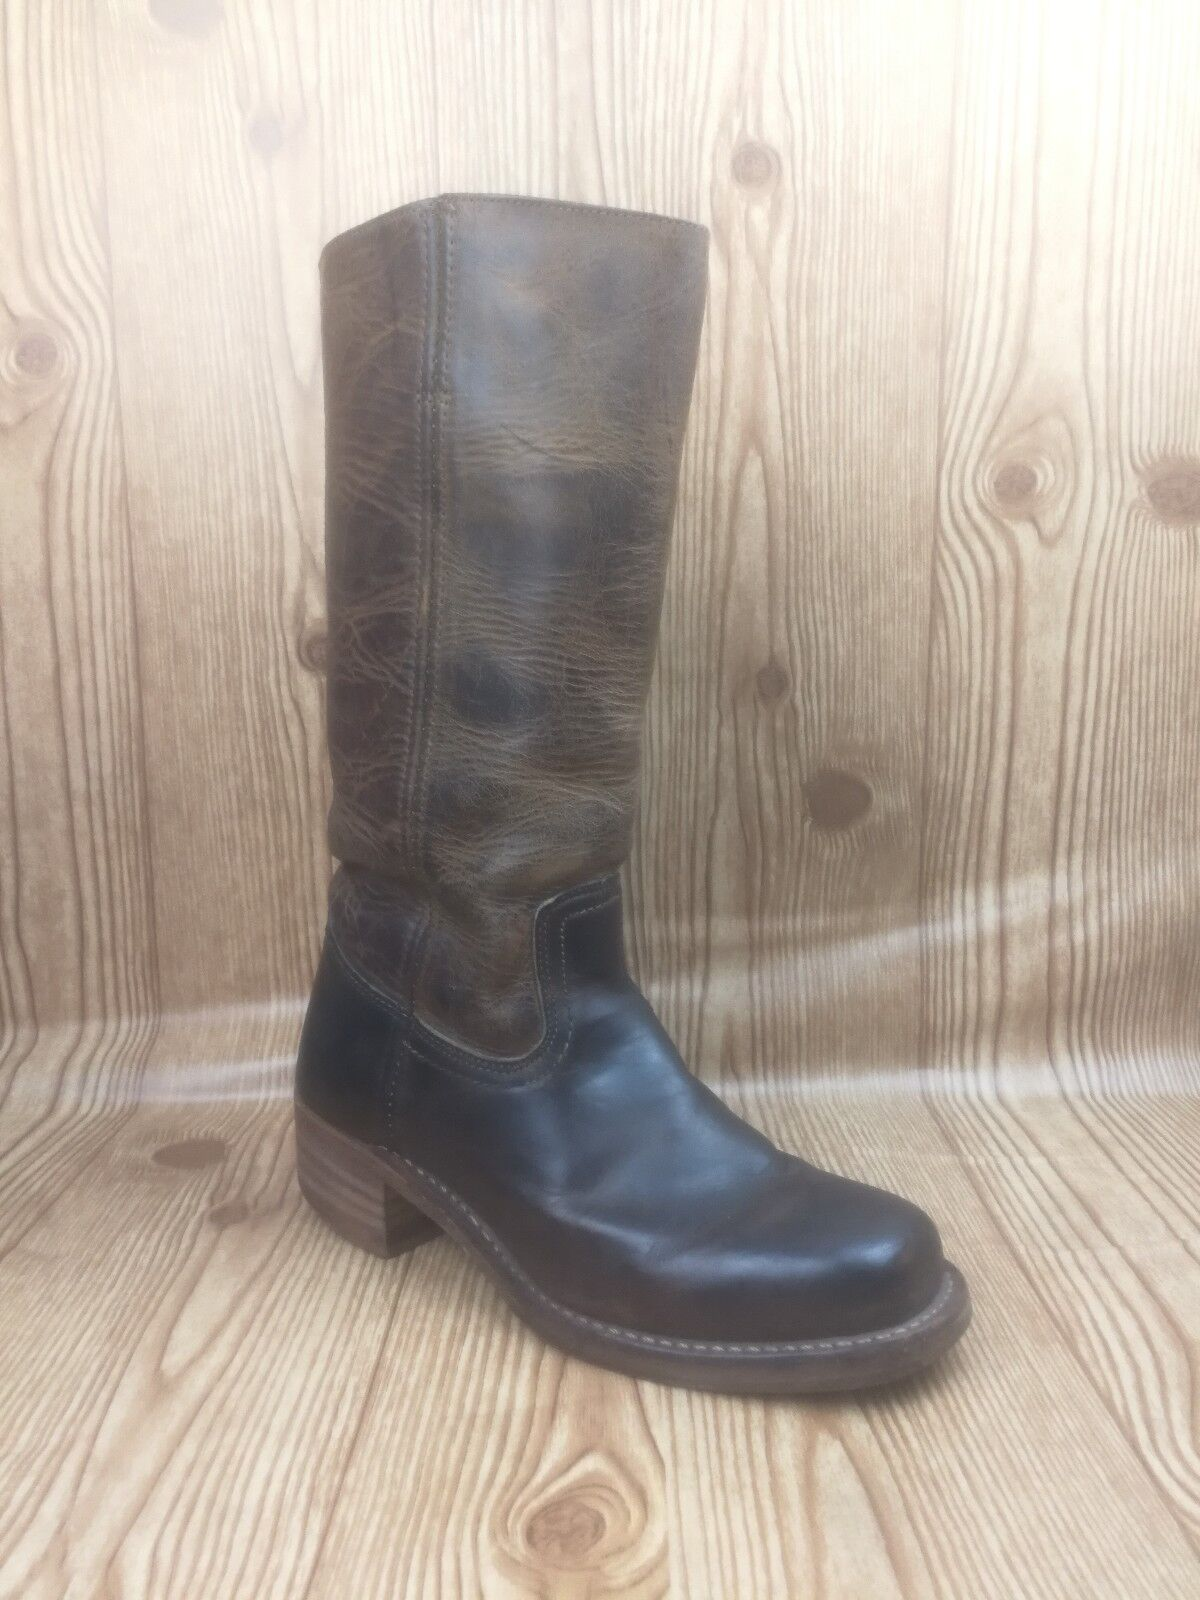 Frye Campus 14L DBN 77050 Women Brown Distressed Leather Riding Boots Size 8.5M